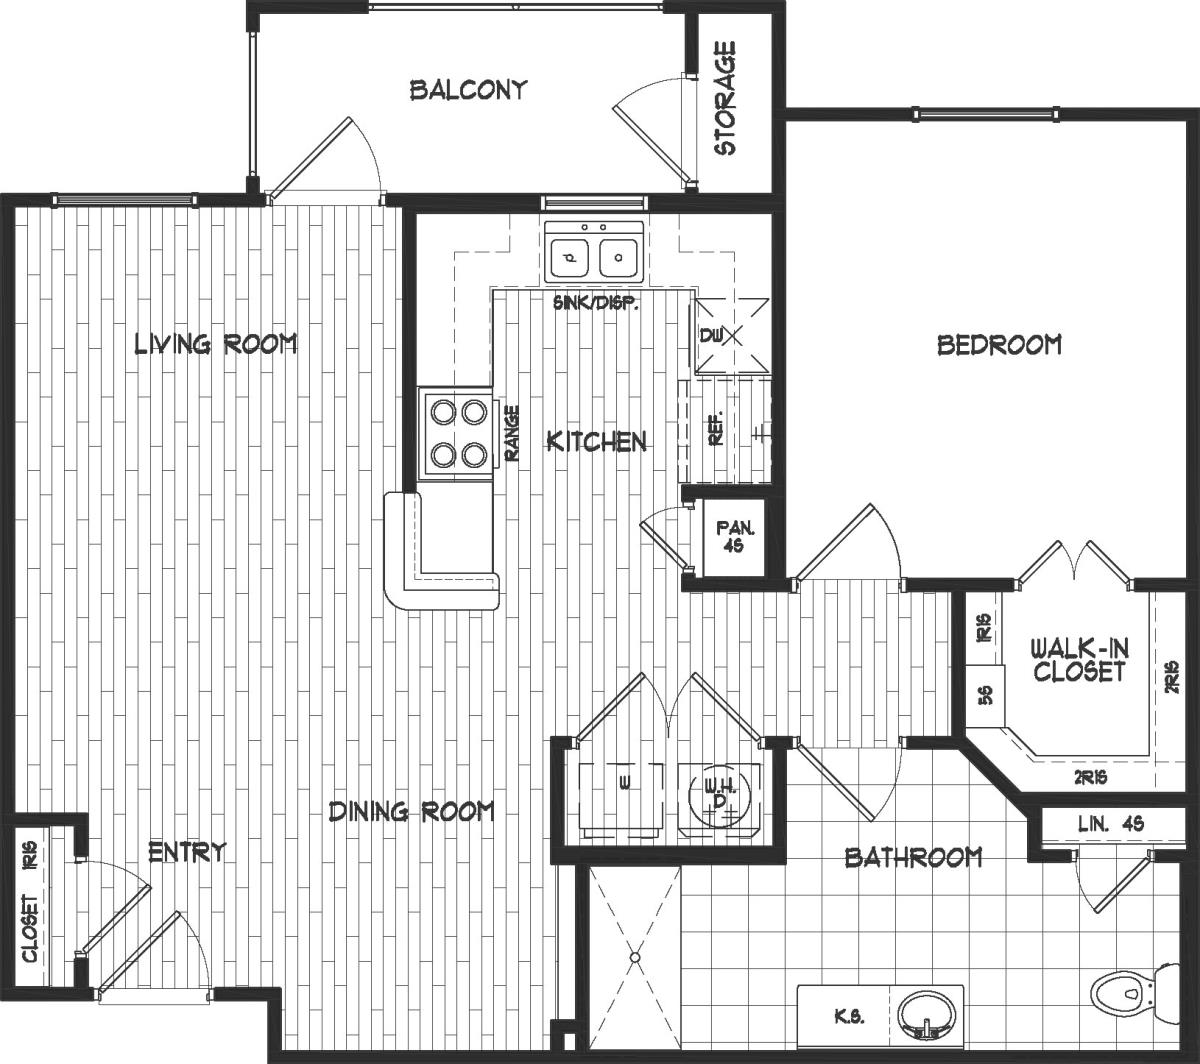 781 sq. ft. 50% floor plan